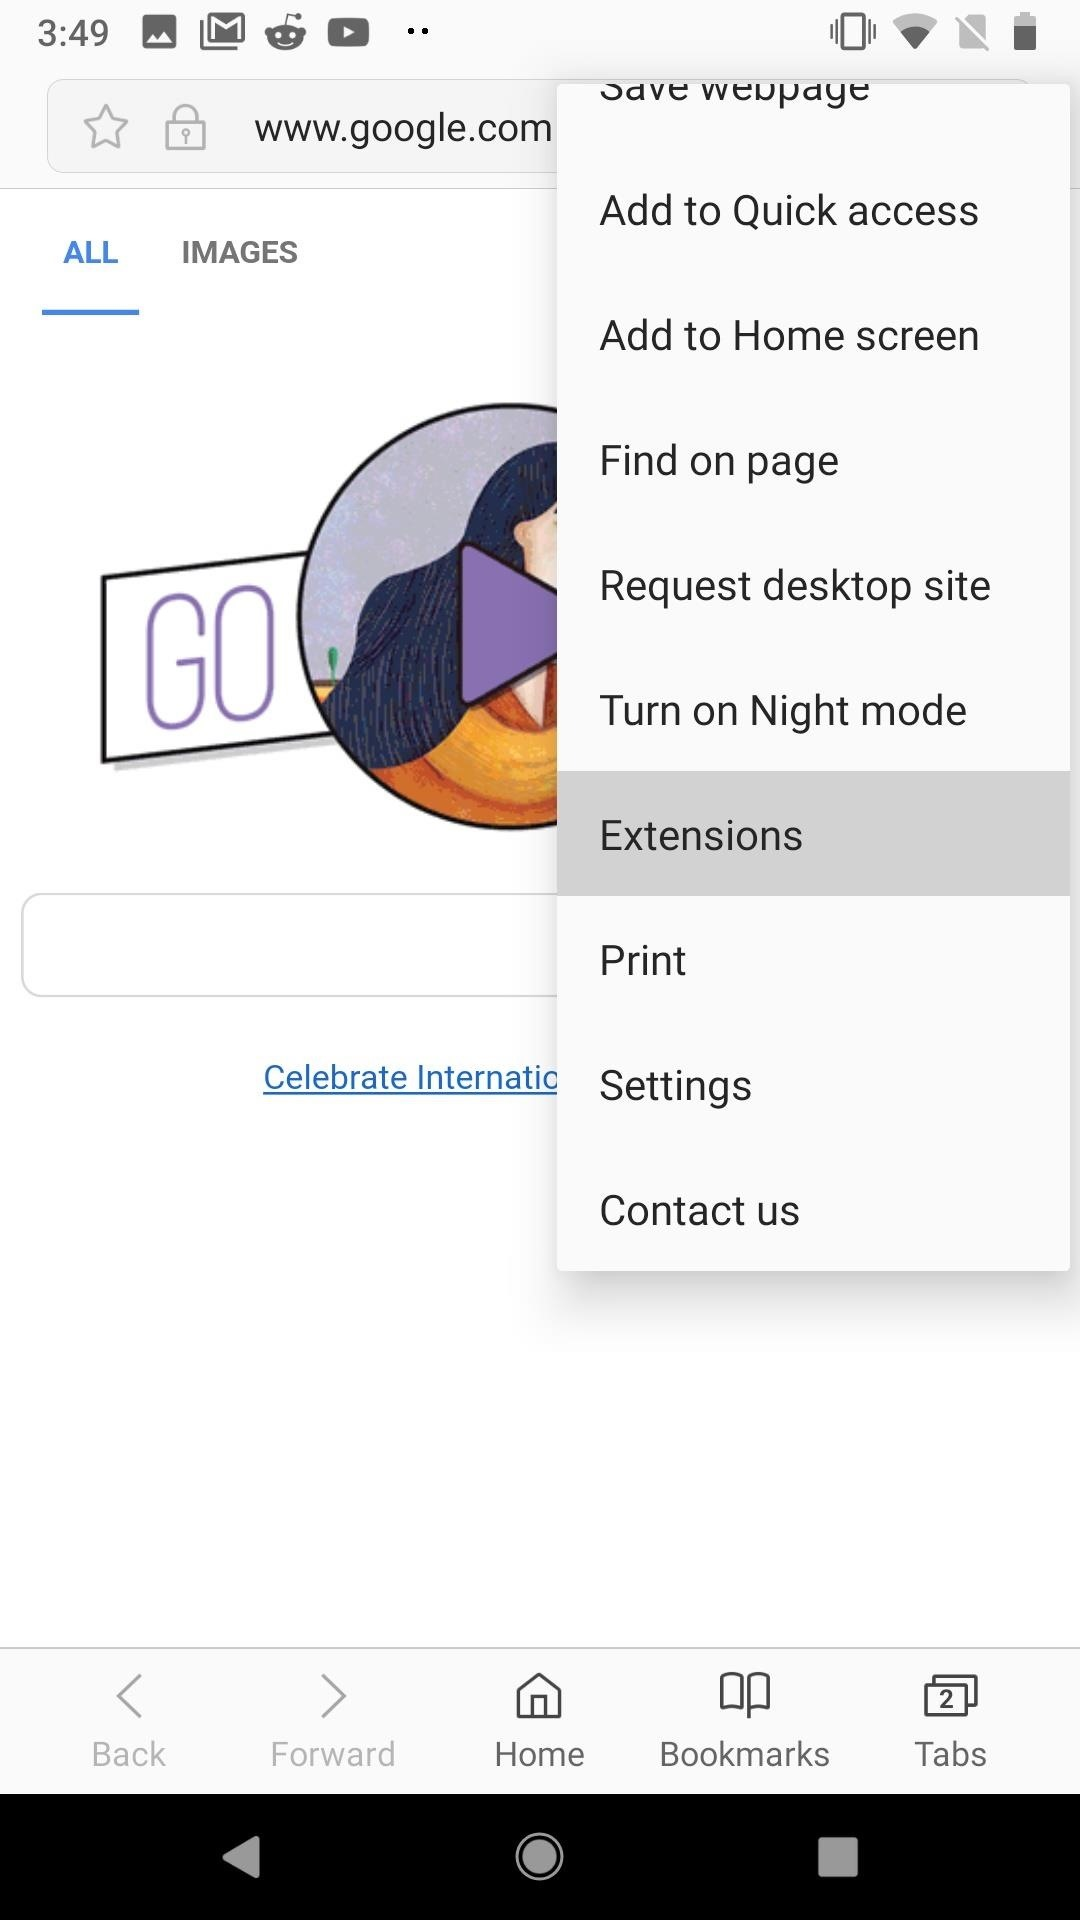 Samsung Internet 101: How to Use Extensions to Block Ads, Scan QR Codes, & More